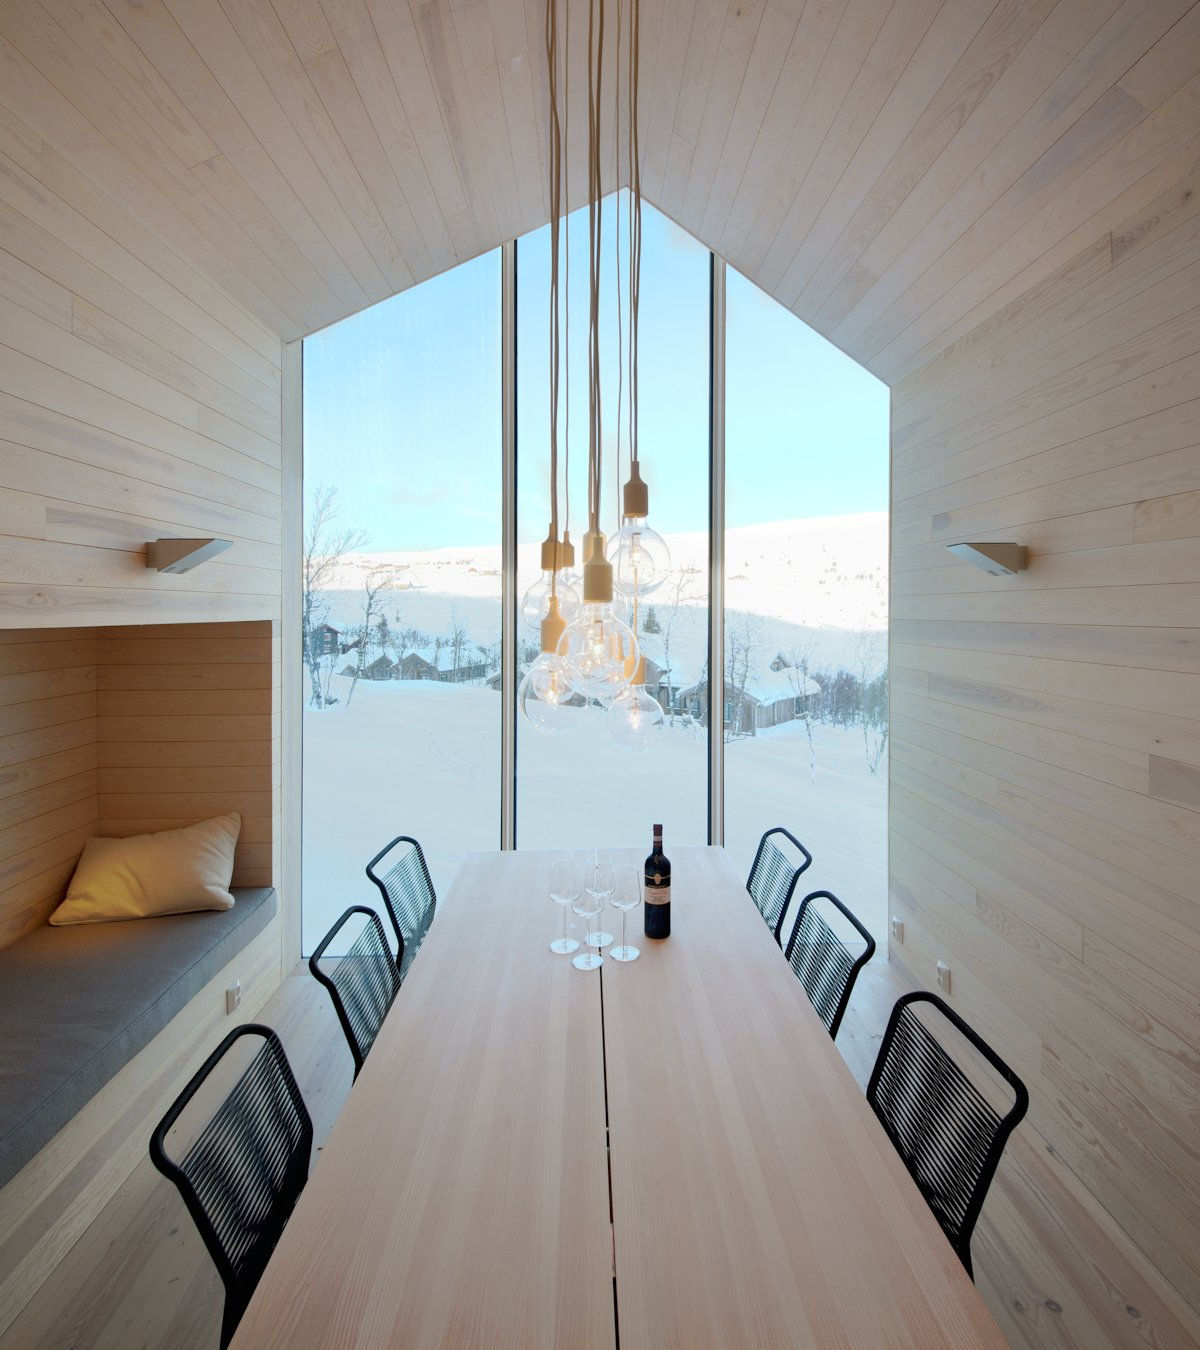 Dining Table, Lighting, Holiday Lodge in Havsdalen, Norway